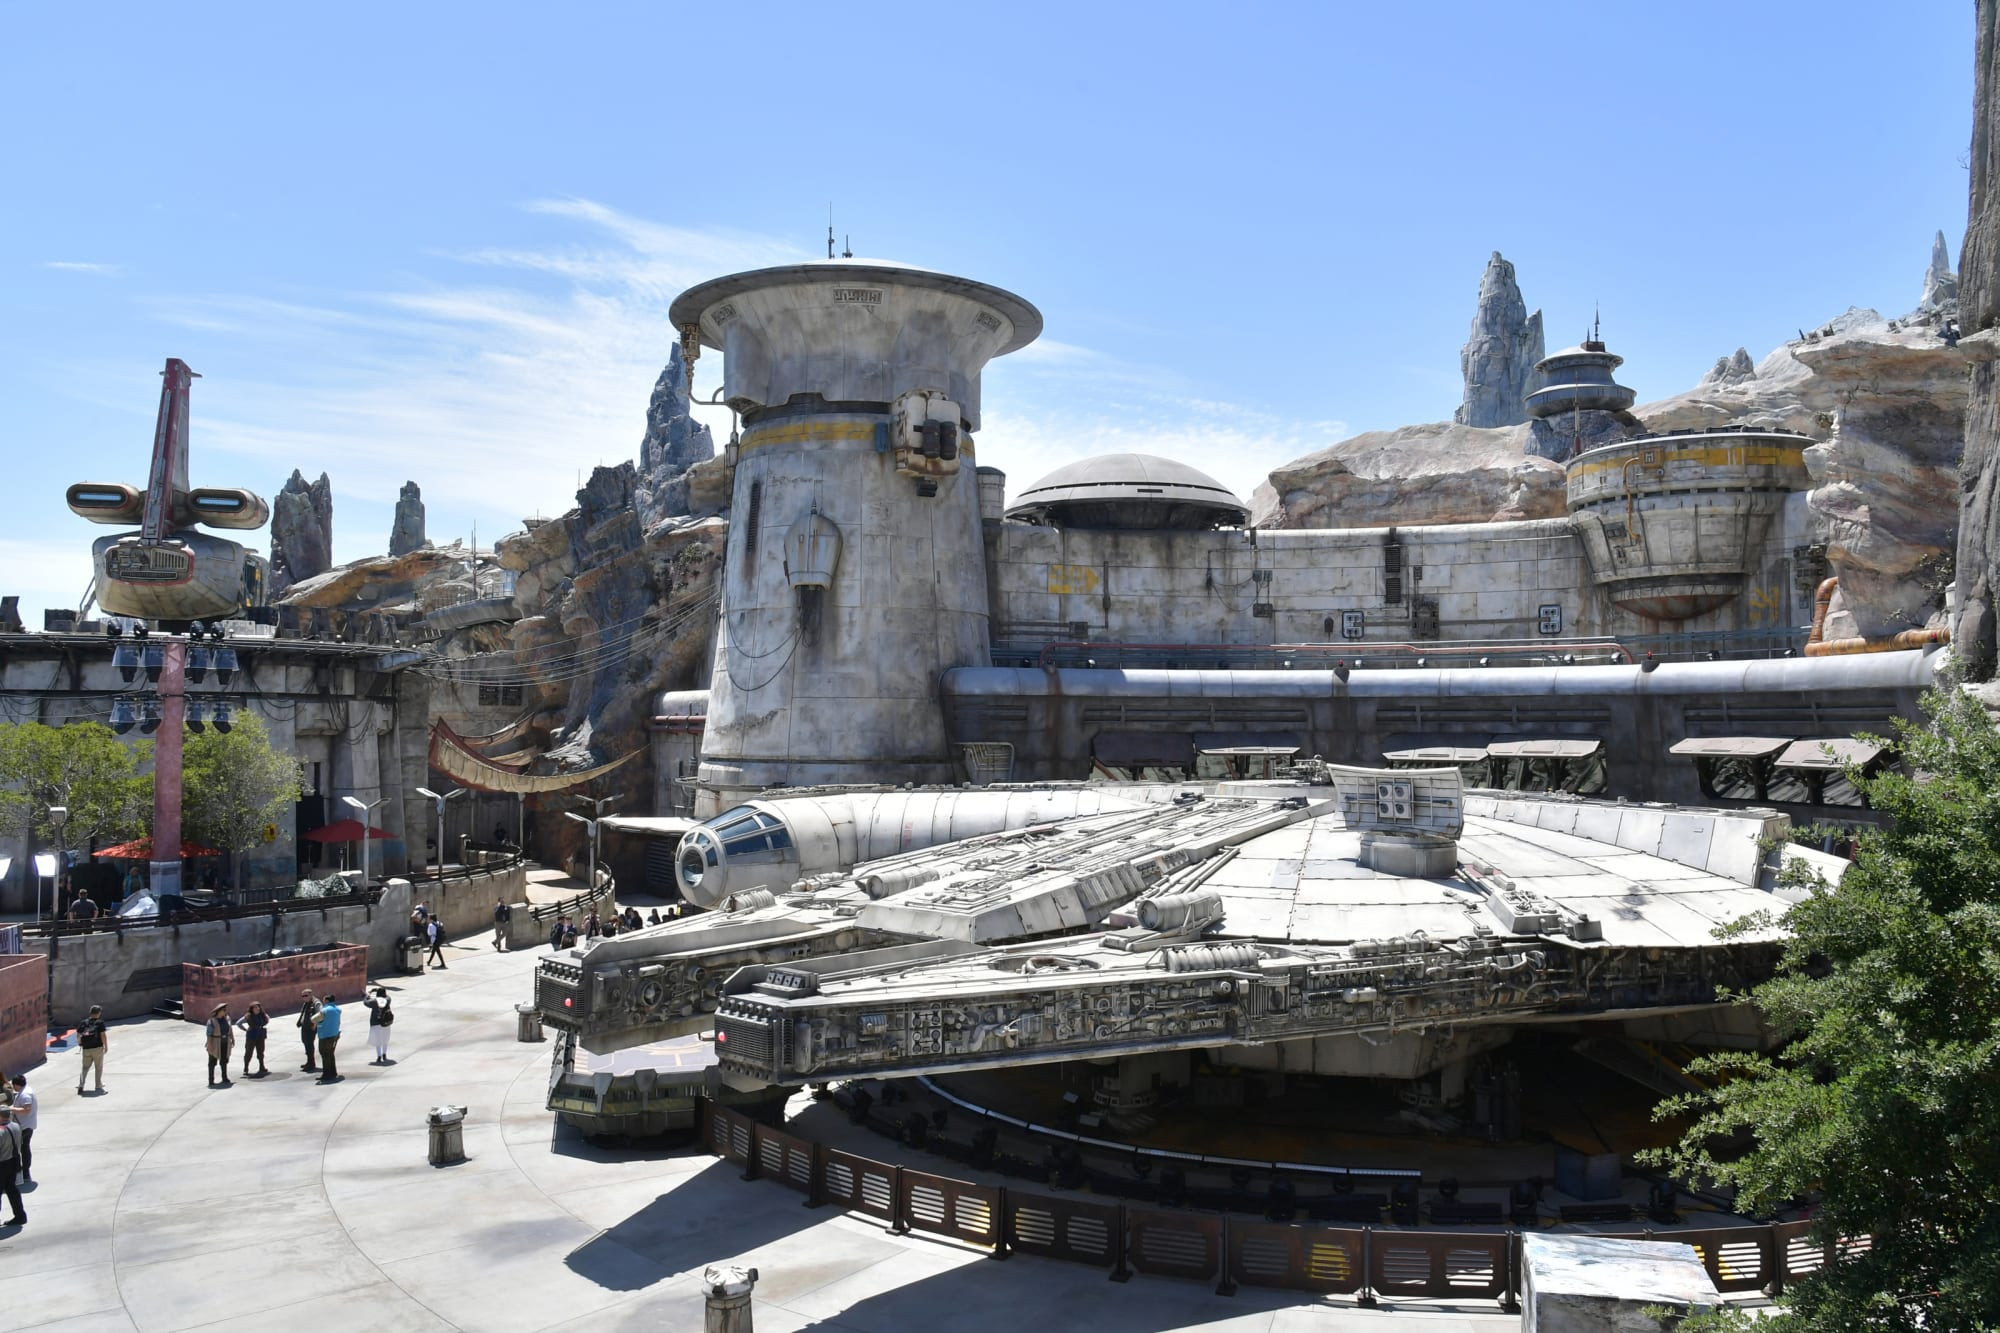 Star Wars: Galaxy's Edge was originally going to feature Mos Eisley spaceport